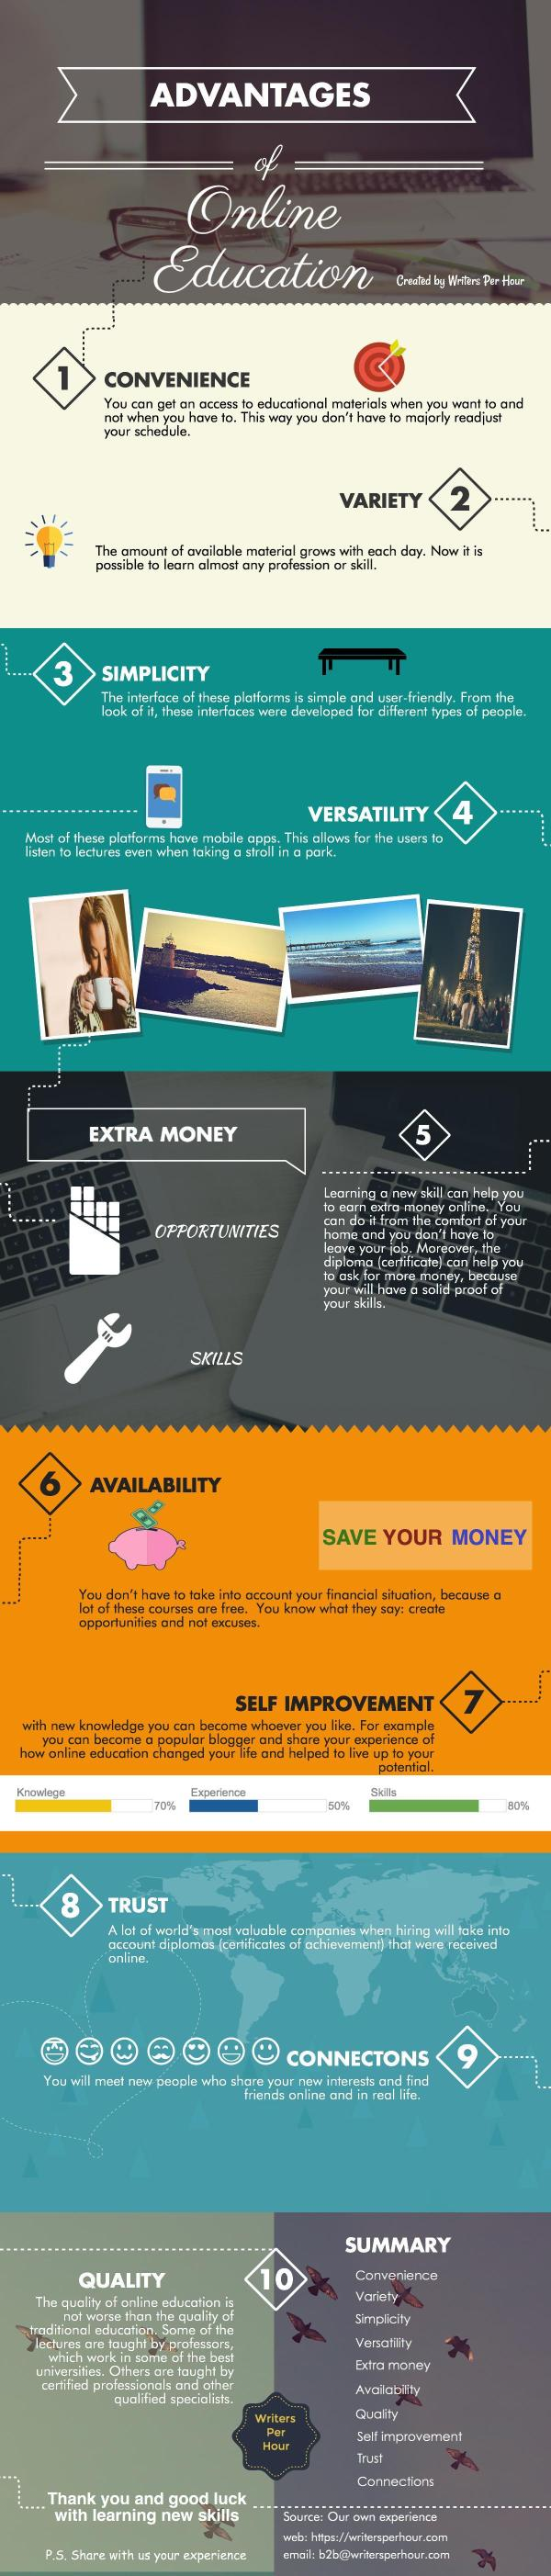 Advantages Of Online Education Infographic